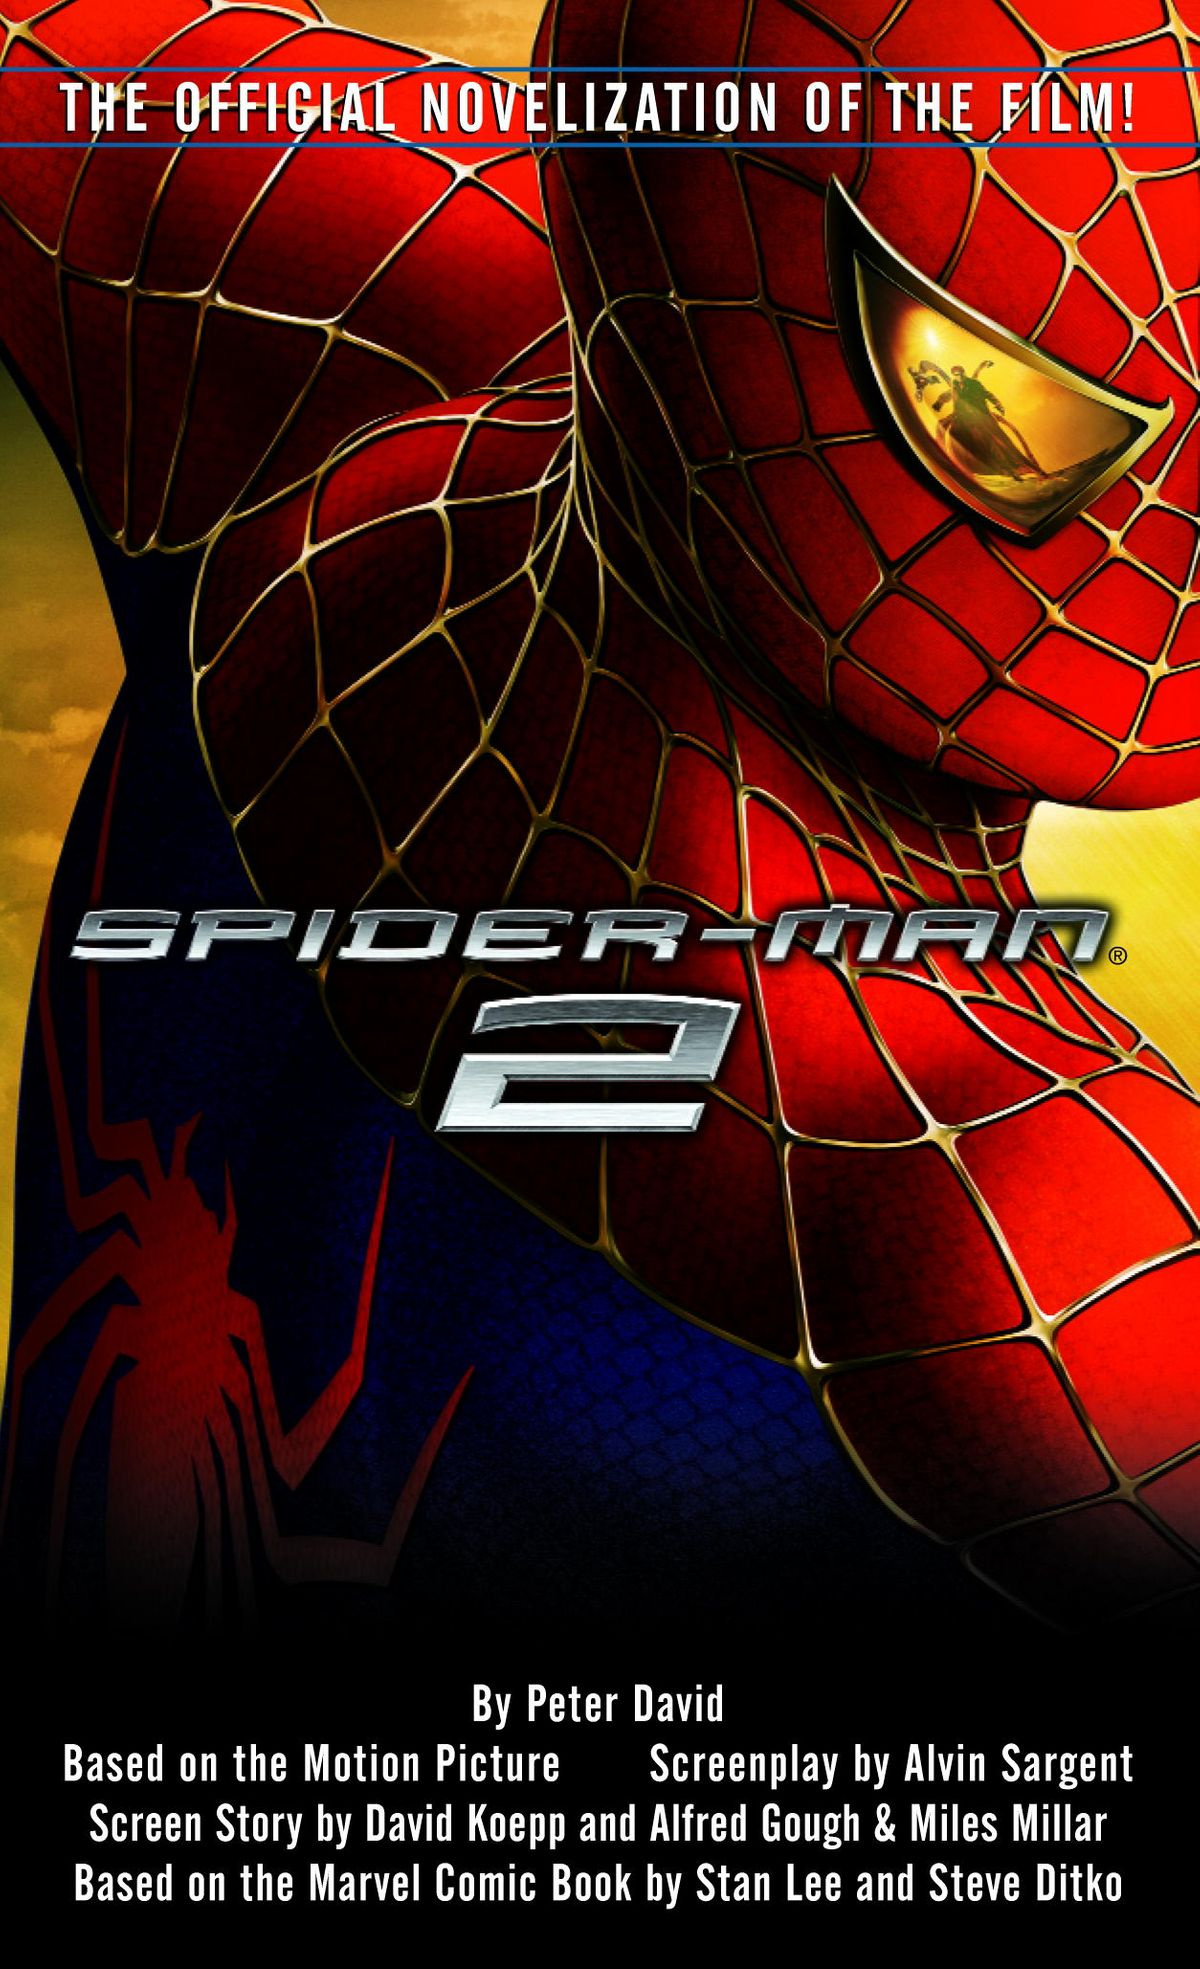 Spider-Man 2 (novel)